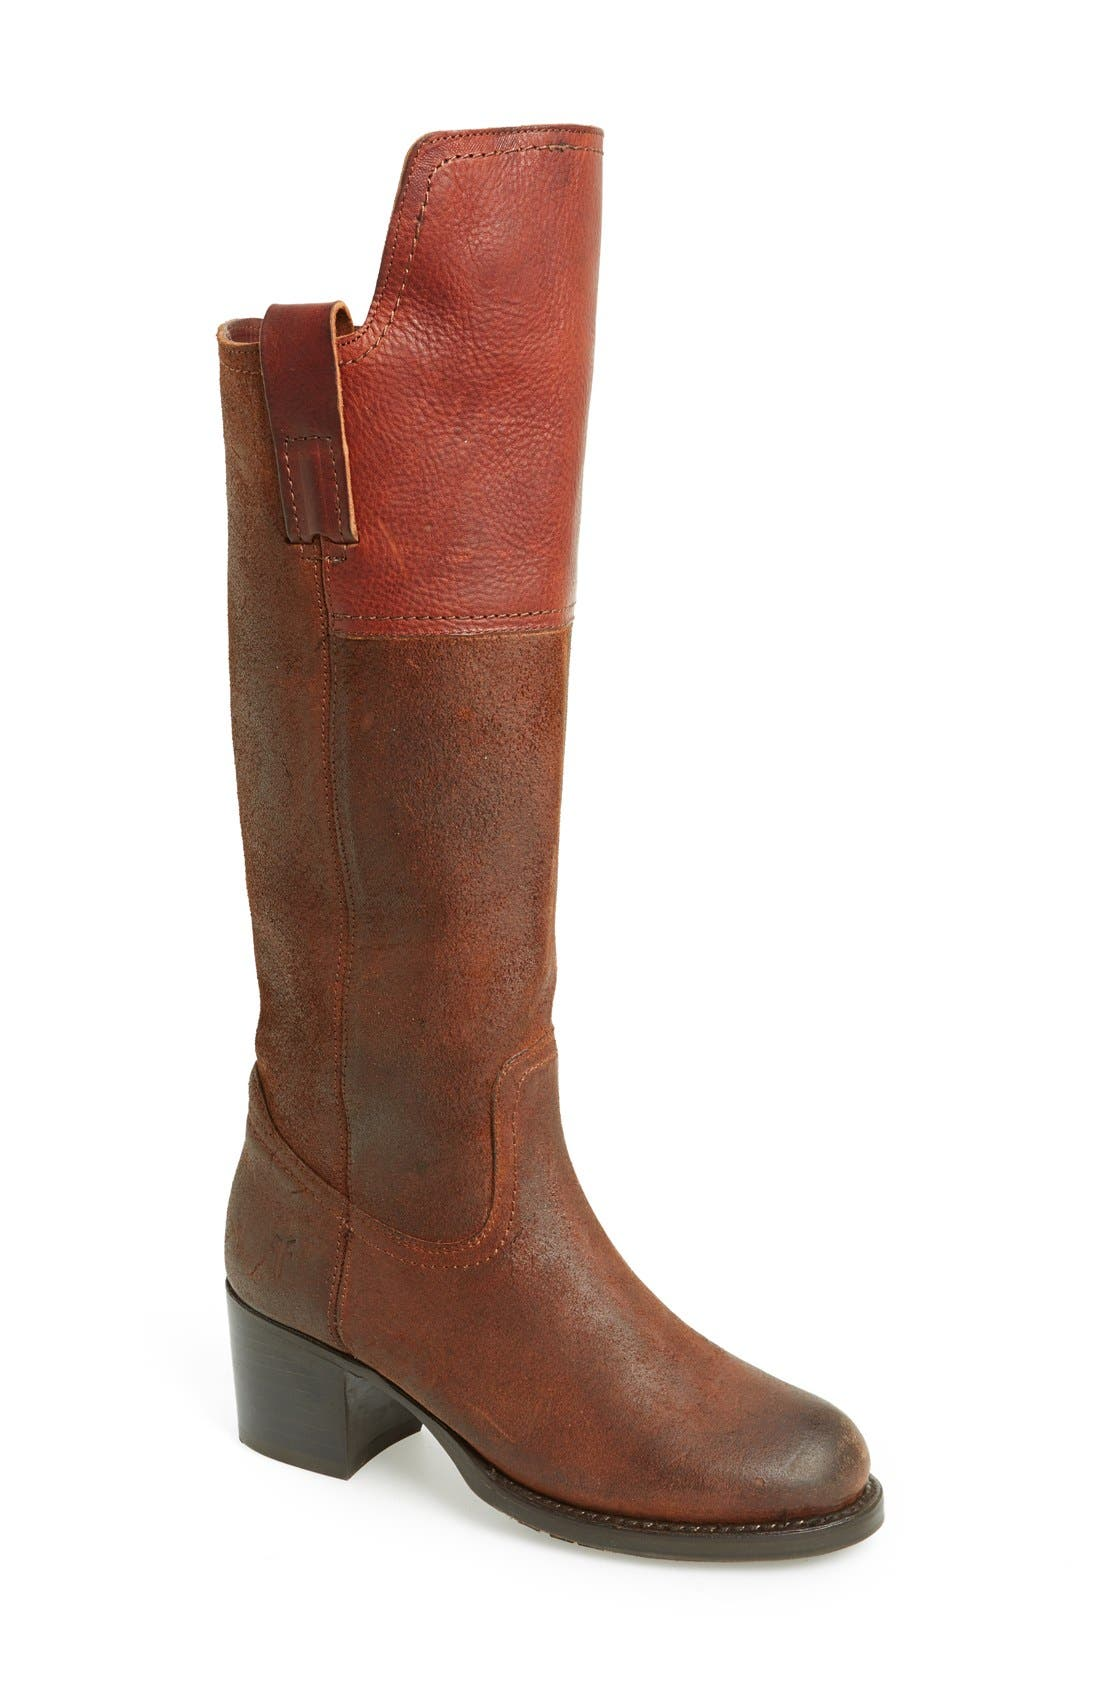 Alternate Image 1 Selected - Frye 'Autumn Shield' Tall Suede & Leather Boot (Women)